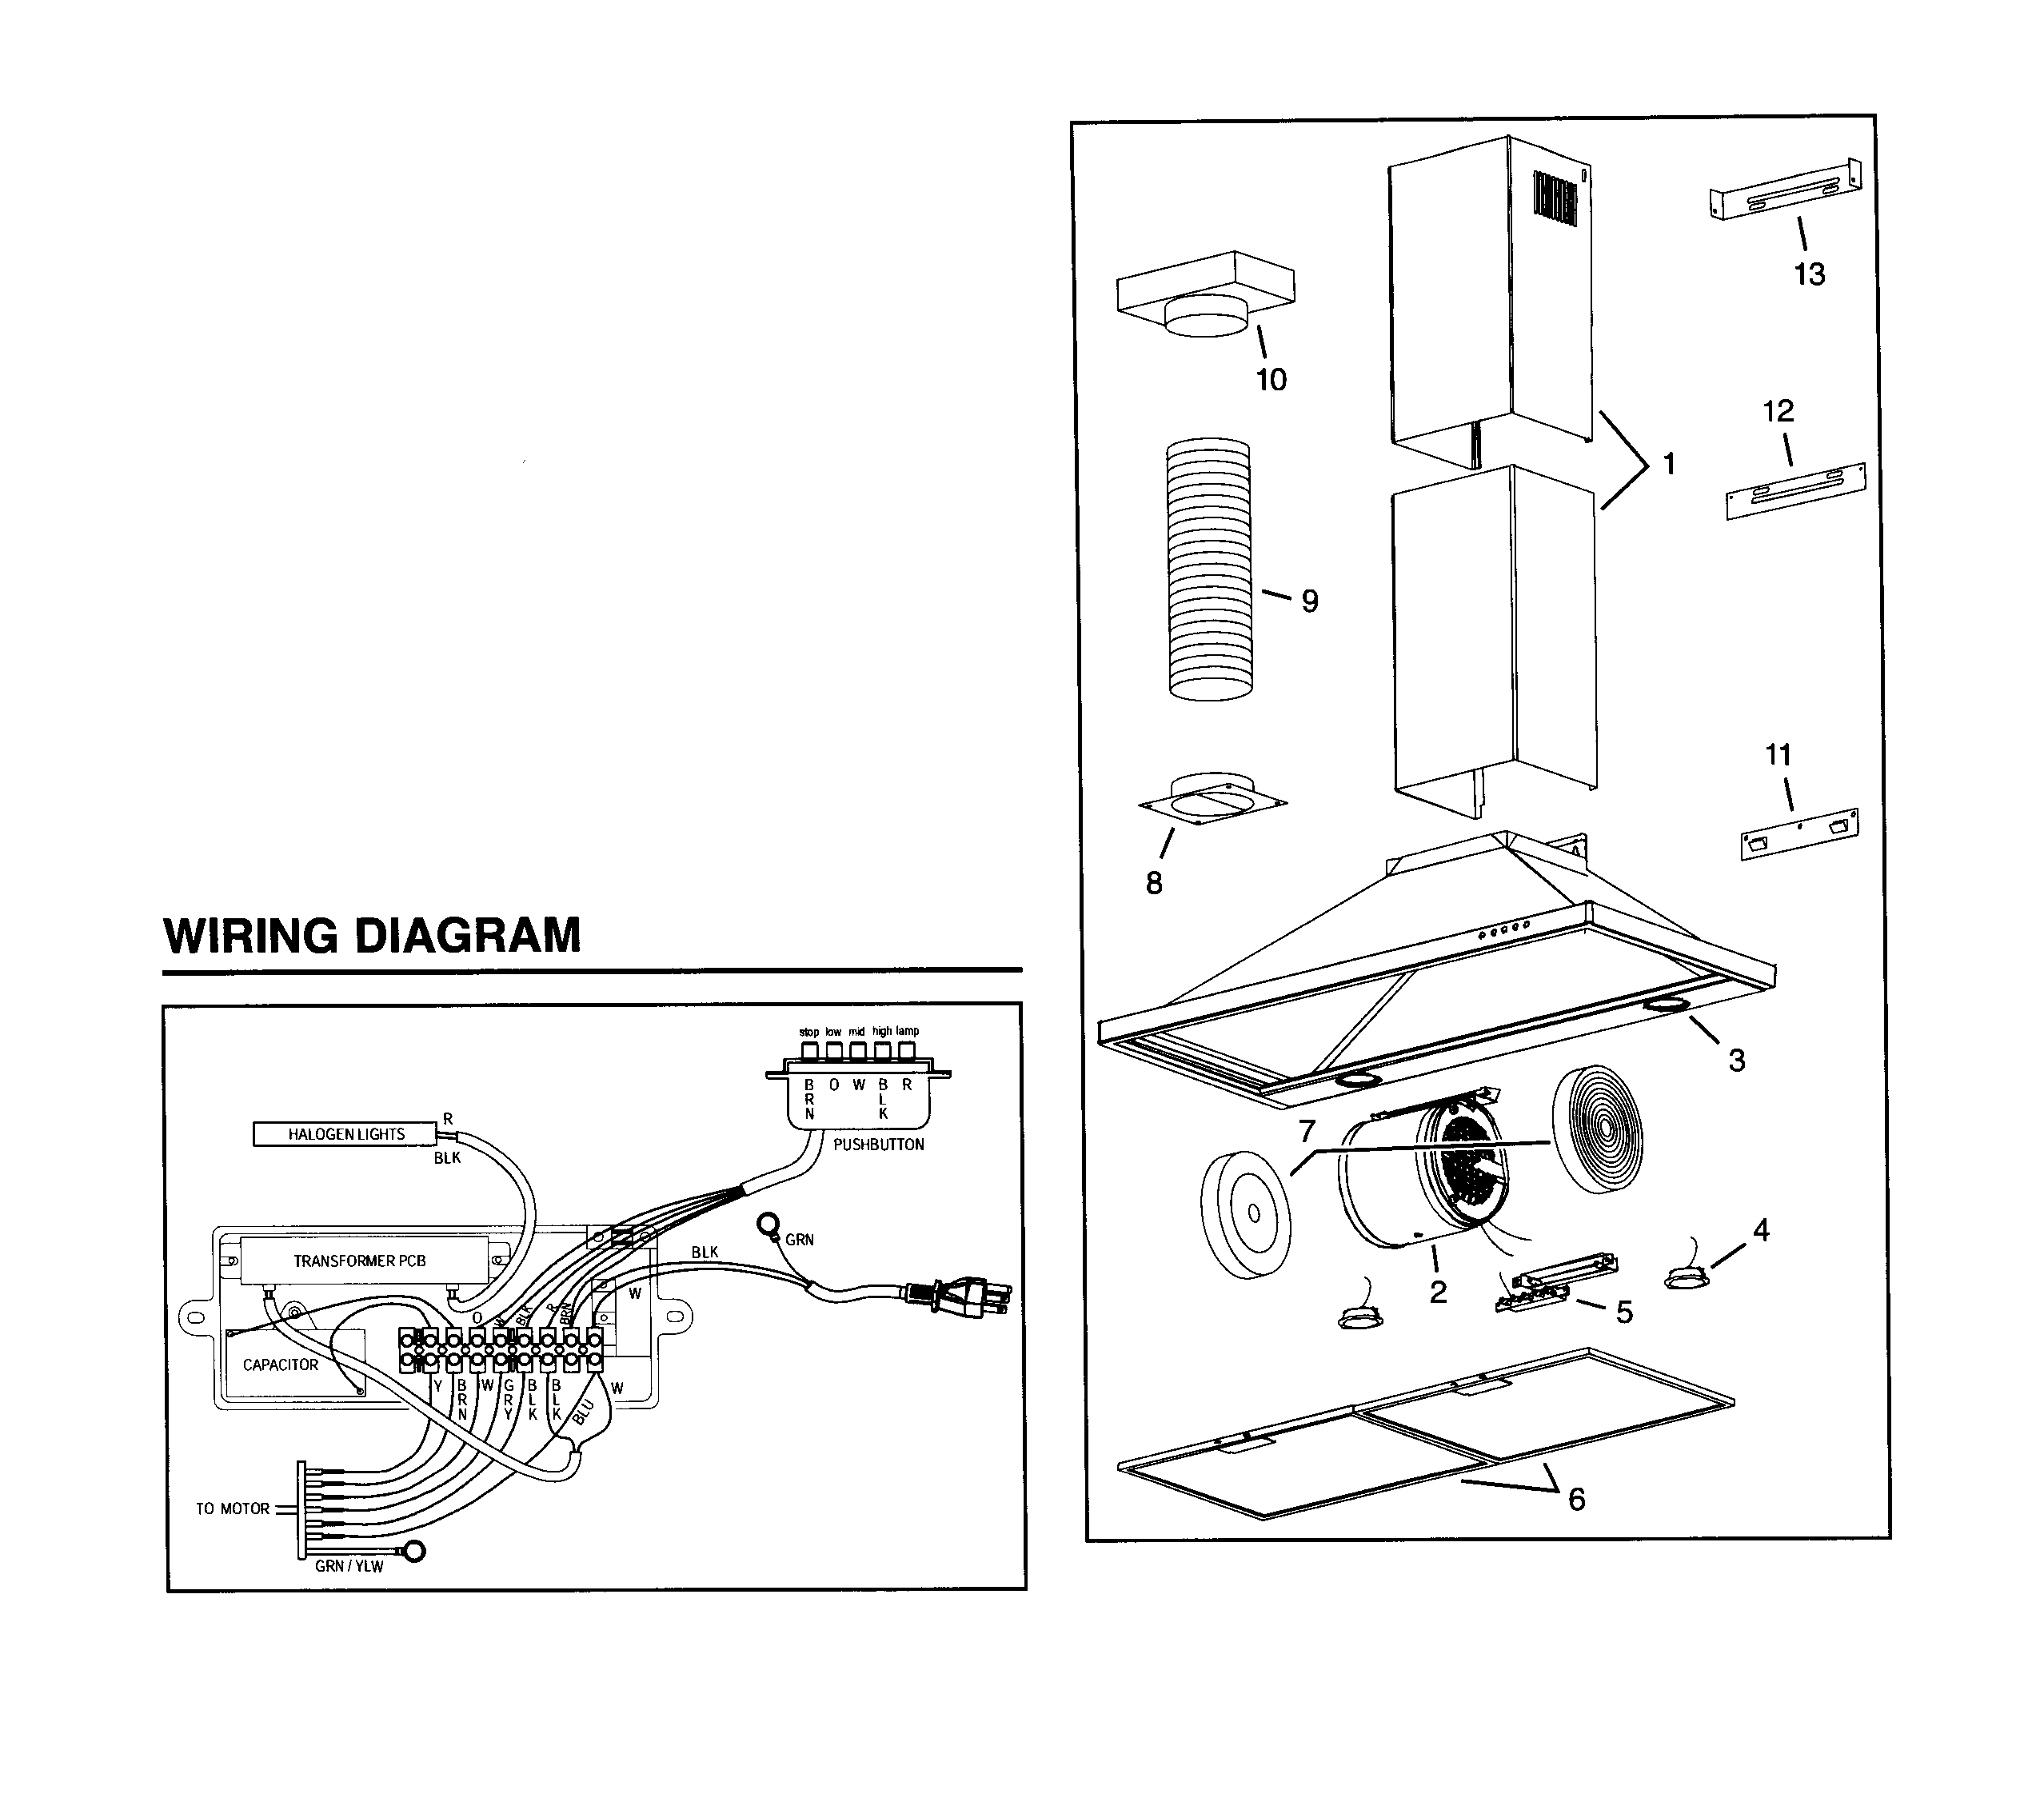 50045782 00001 broan range hood wiring diagram whirlpool gas range wiring Vent a Hood Wiring Diagram at alyssarenee.co